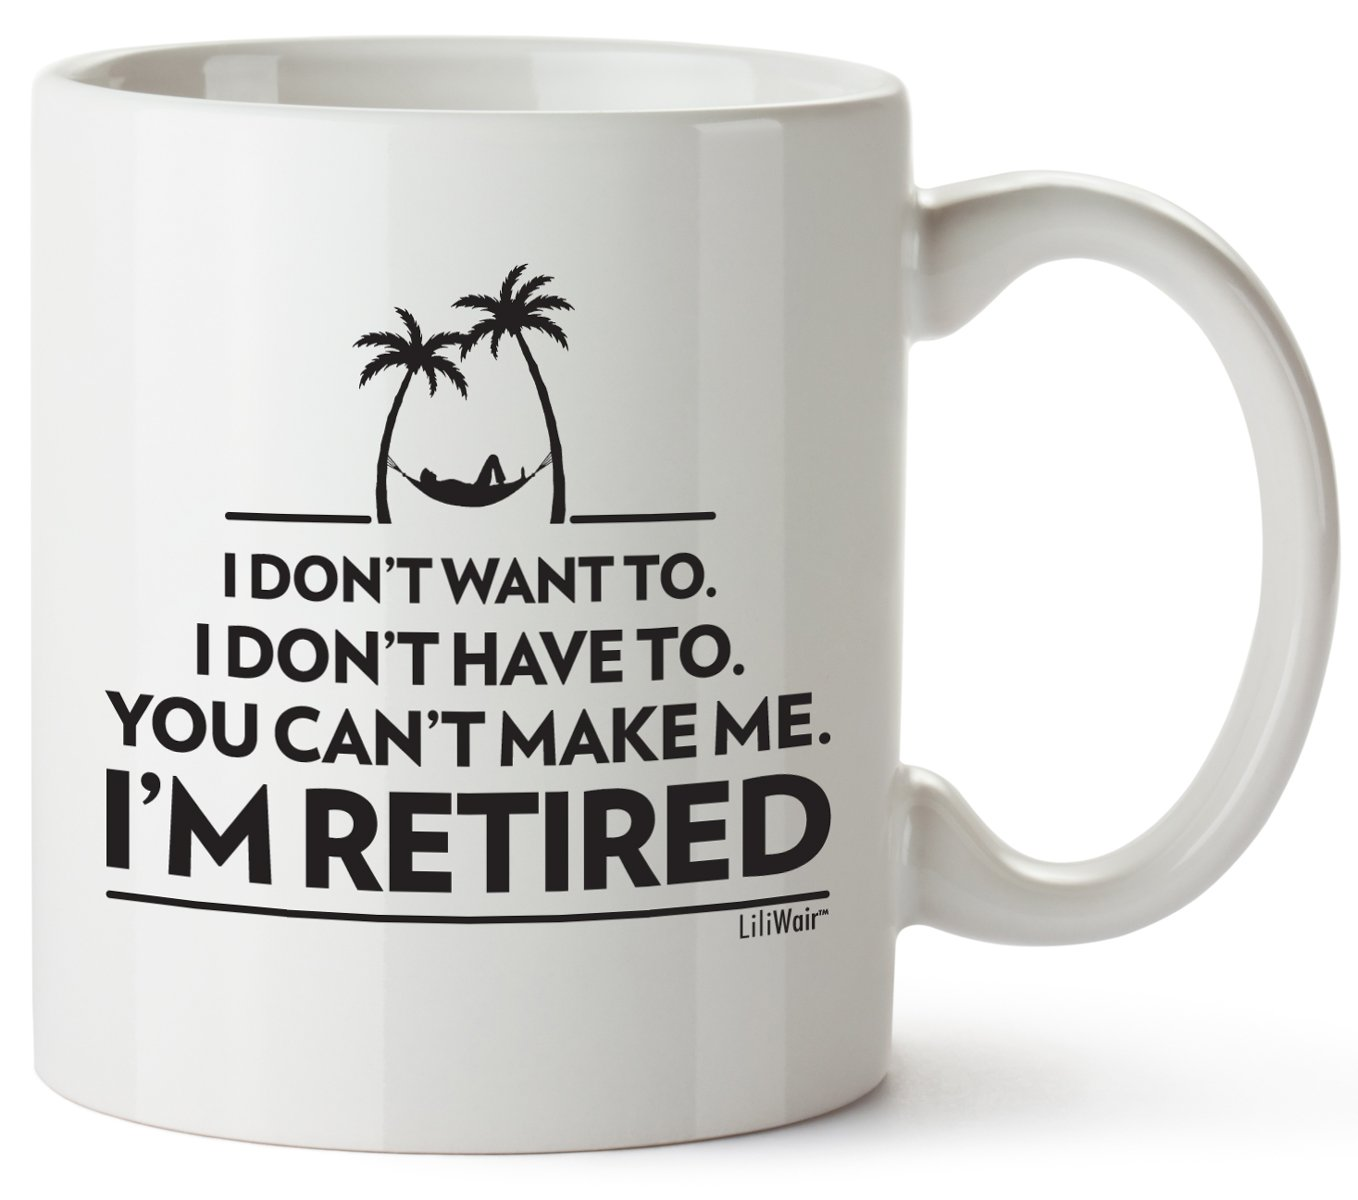 Funny Retirement Gifts Gag for Women Men Dad Mom Valentines Day Husband Wife Boyfriend Humorous Retirement Coffee Mug Gift Retired Mugs for Coworkers Office ...  sc 1 st  Amazon.com & Amazon.com: Funny Retirement Gifts Gag for Women Men Dad Mom ...